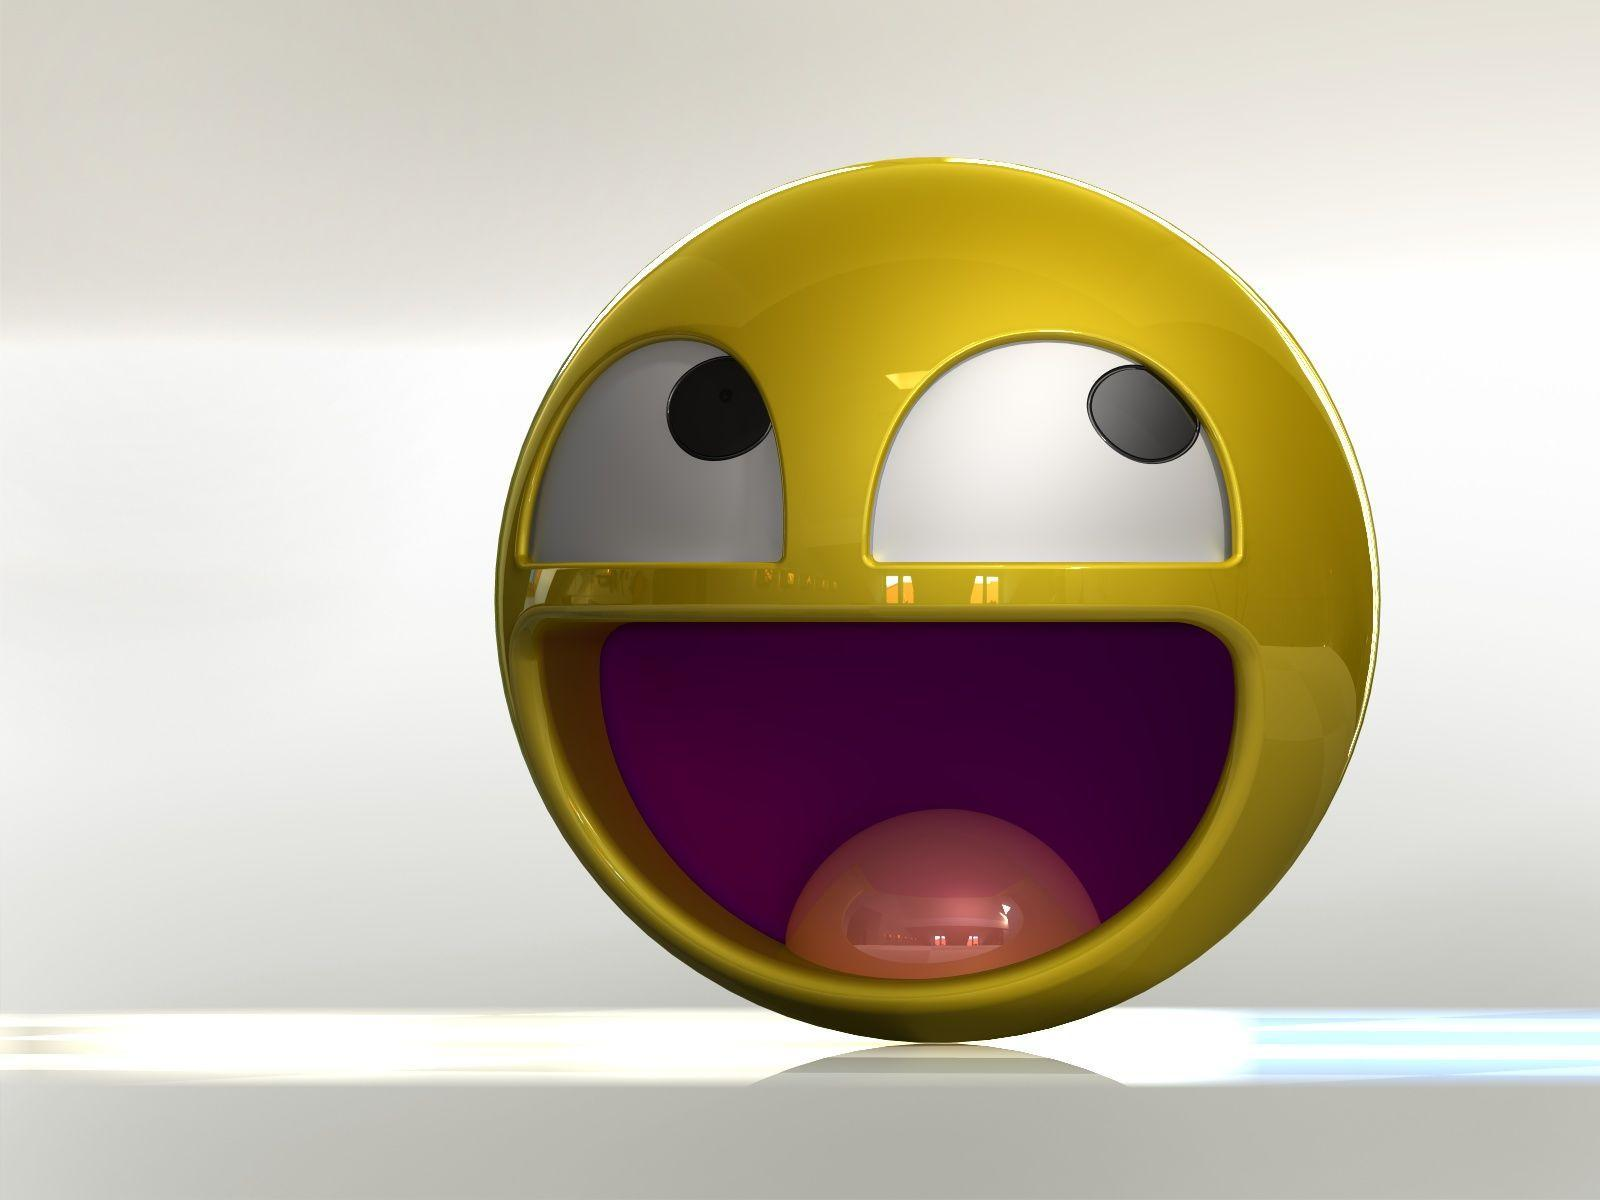 Top 20 Smiley Face Wallpaper: Happy Face Wallpapers